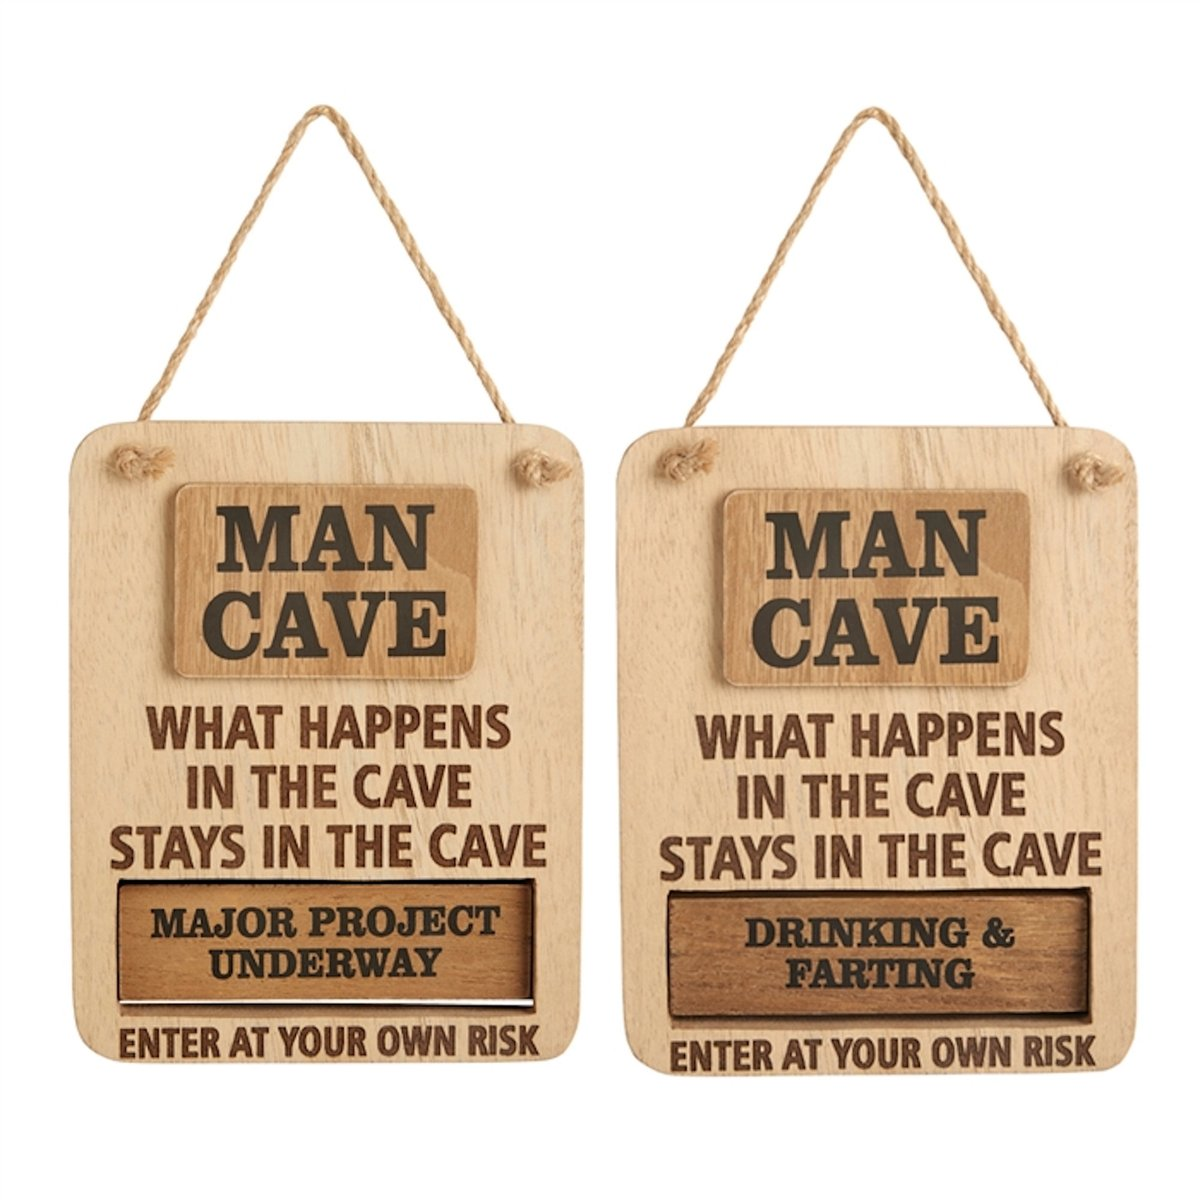 Funny Wooden Wall Plaque - Man Cave Gift https://etsy.me/37SacCc #housewares #homedecor #mancave #beergift #officegift #wallhanging #garage #mangift #funnygiftpic.twitter.com/3XLy6s9Df3